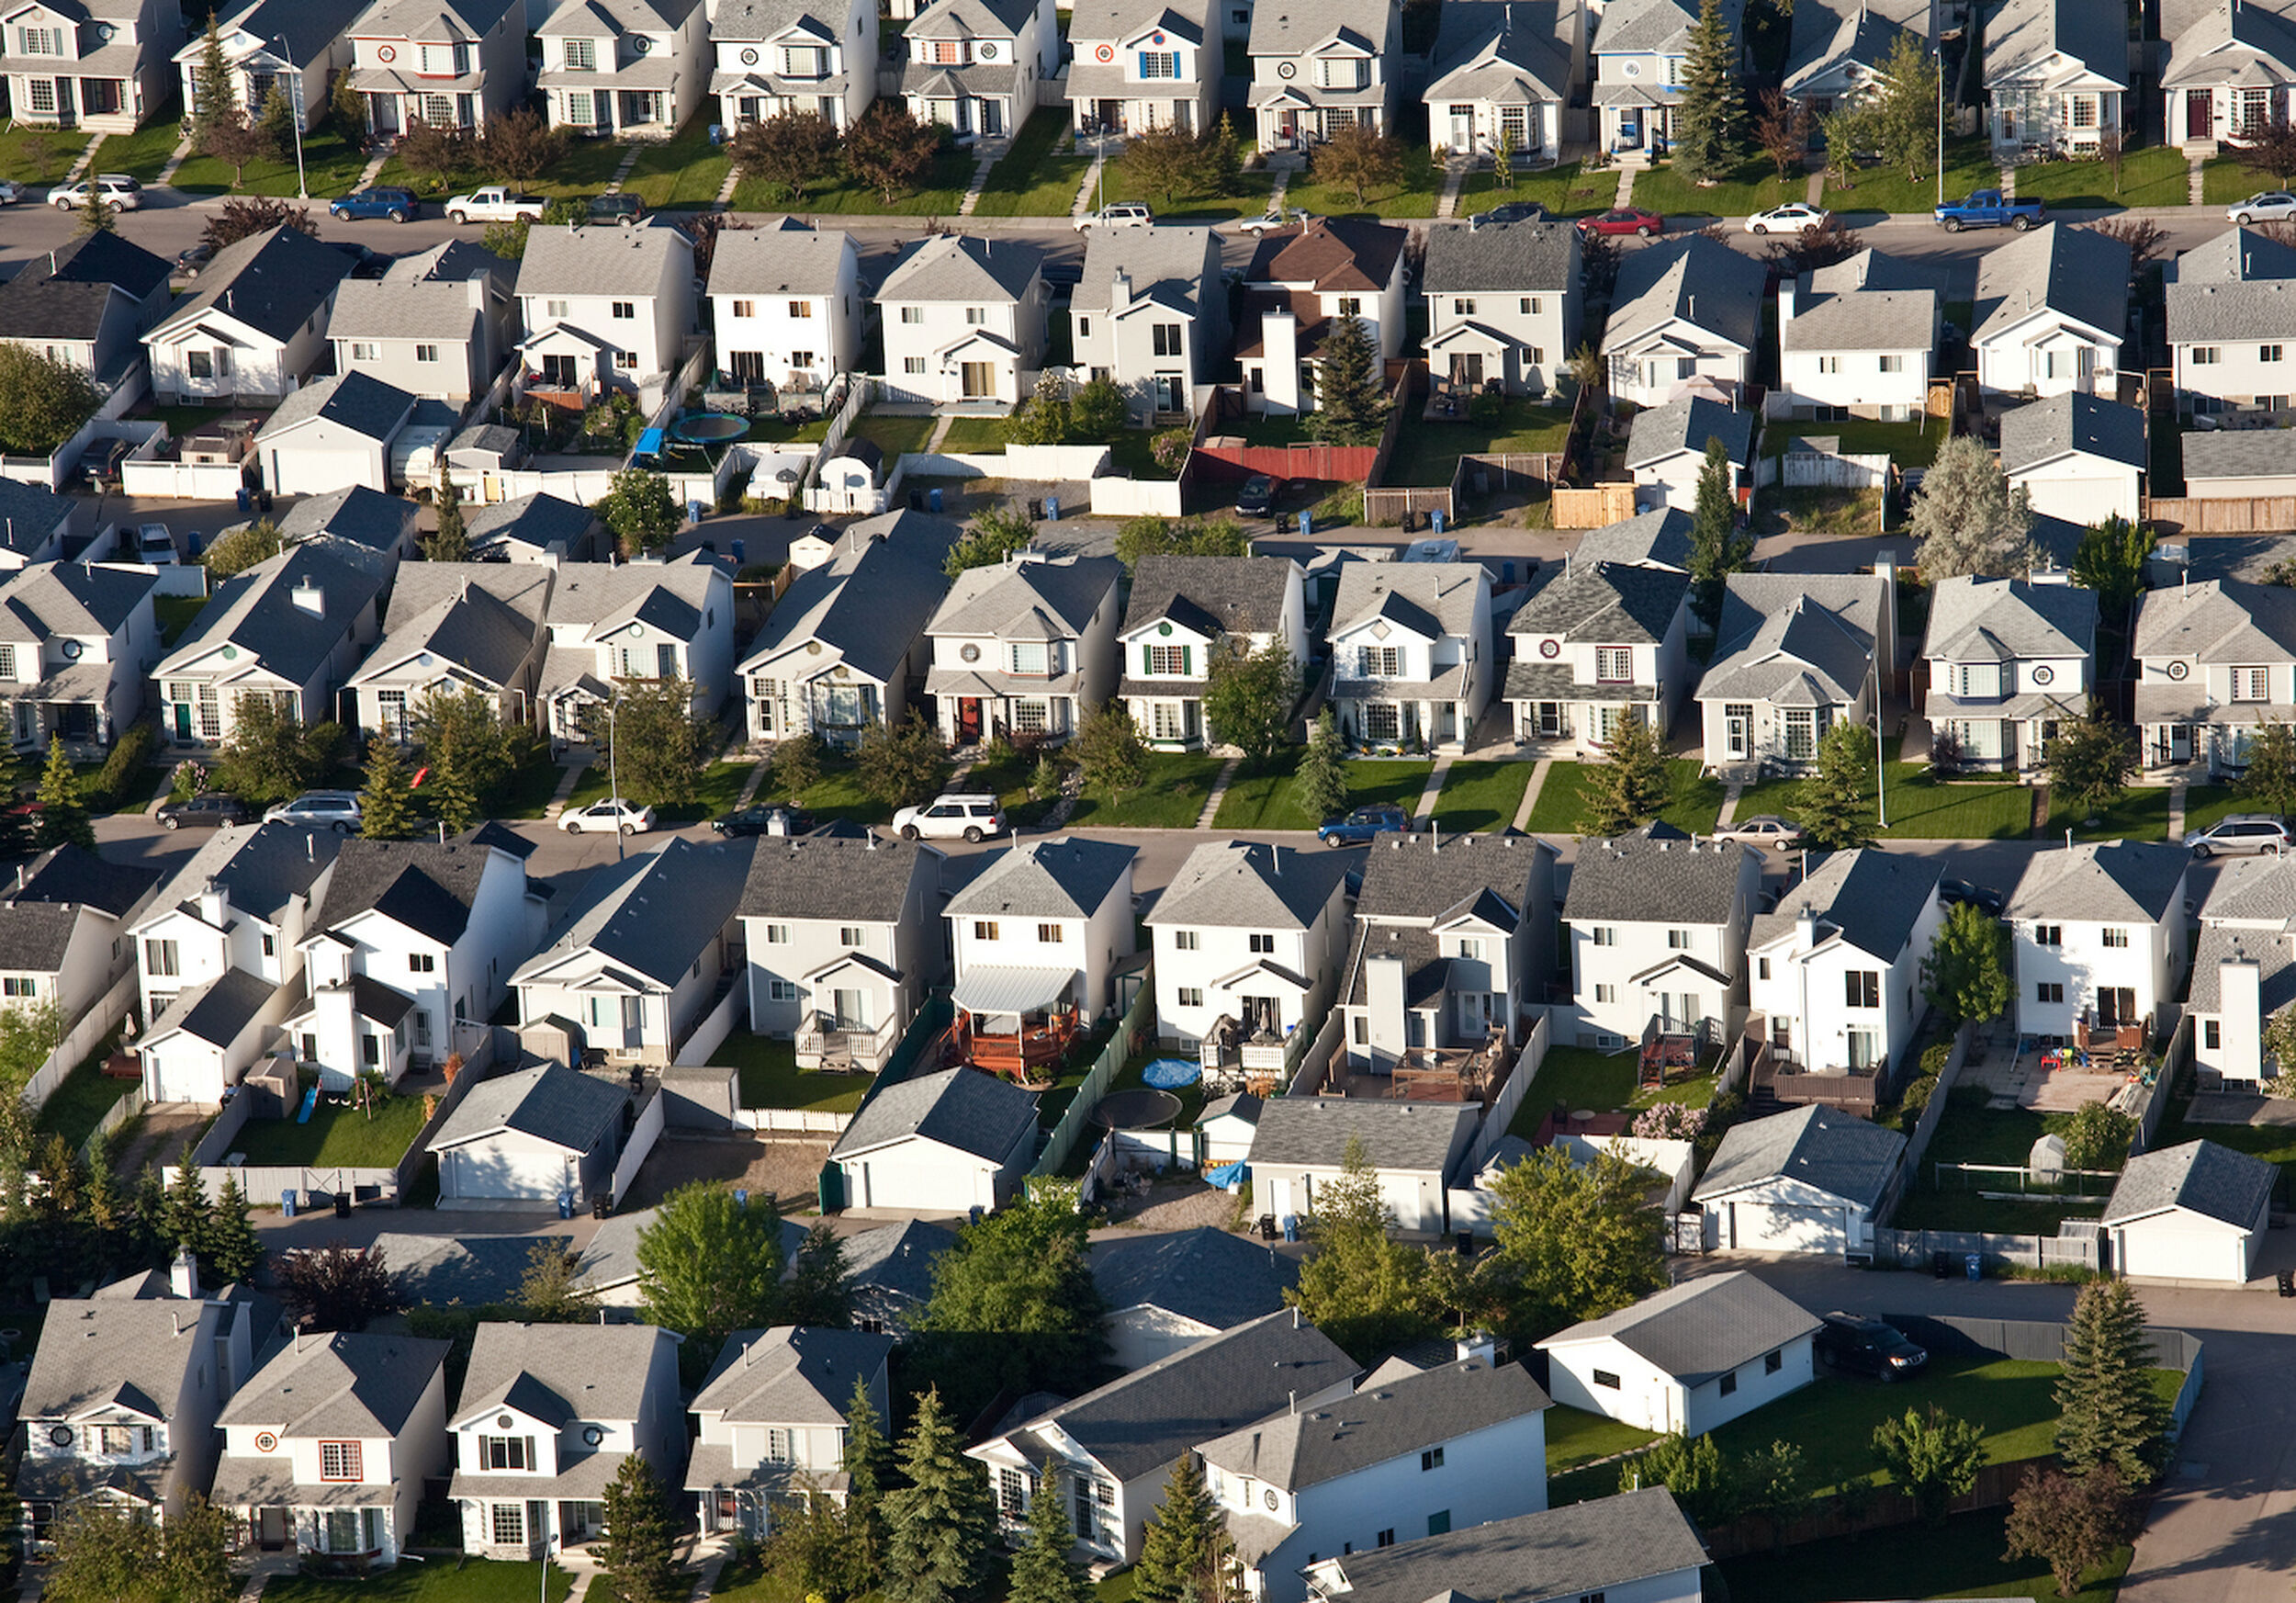 LETTERS: We don't need more new communities | The Sprawl